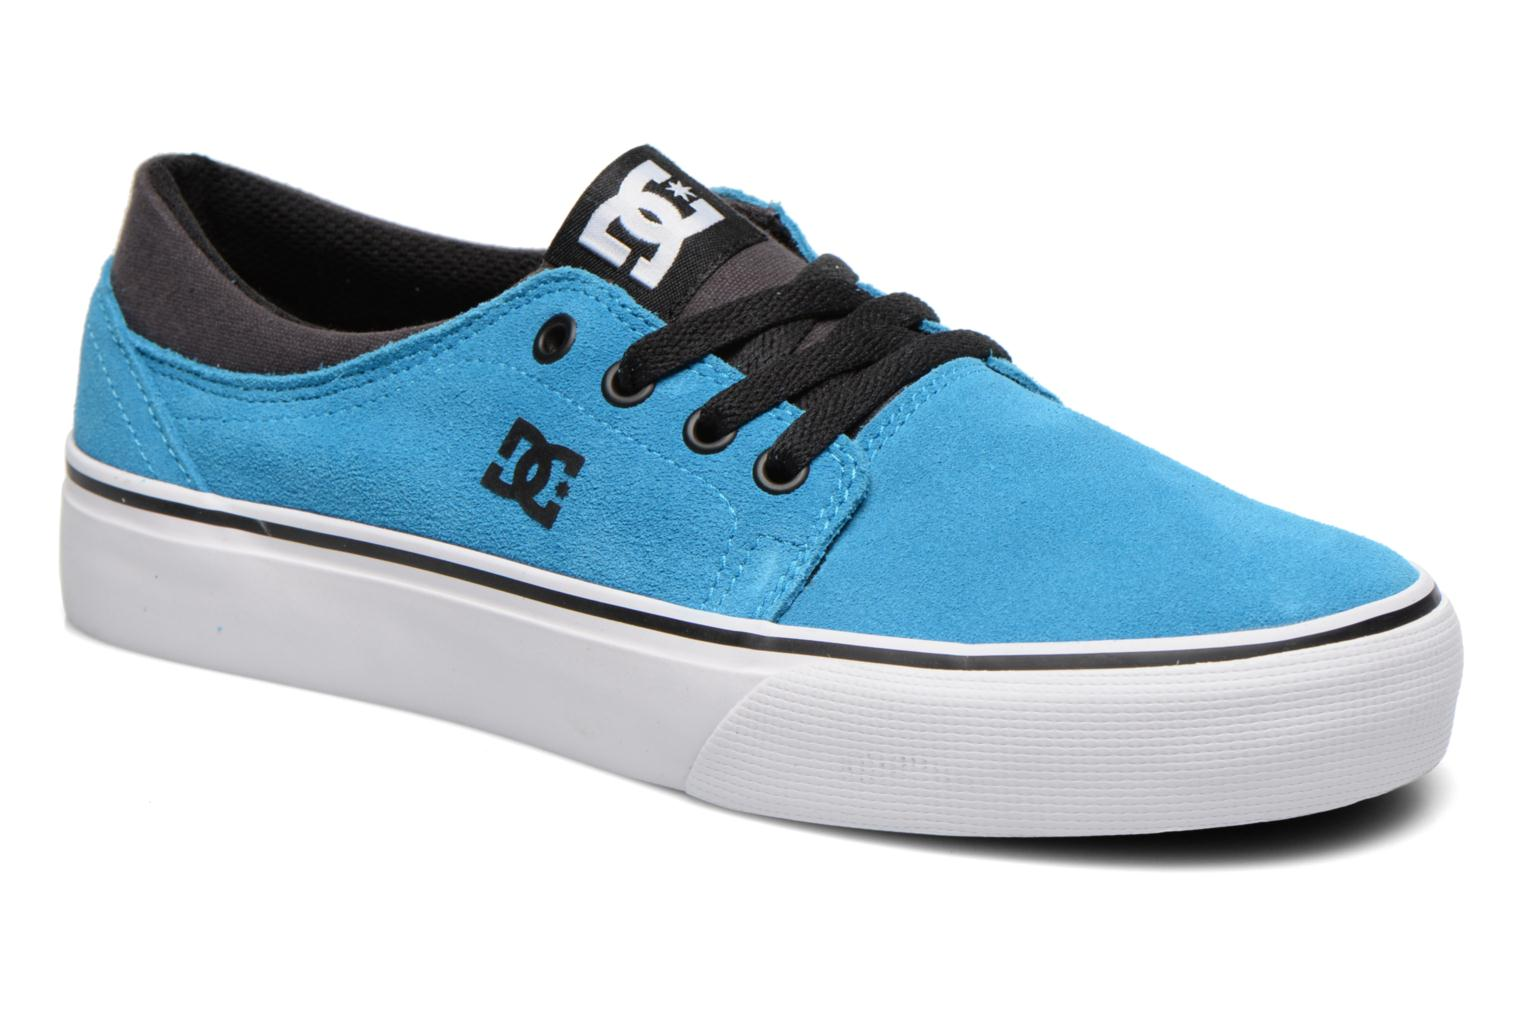 TRASE SD BLUE/BLACK